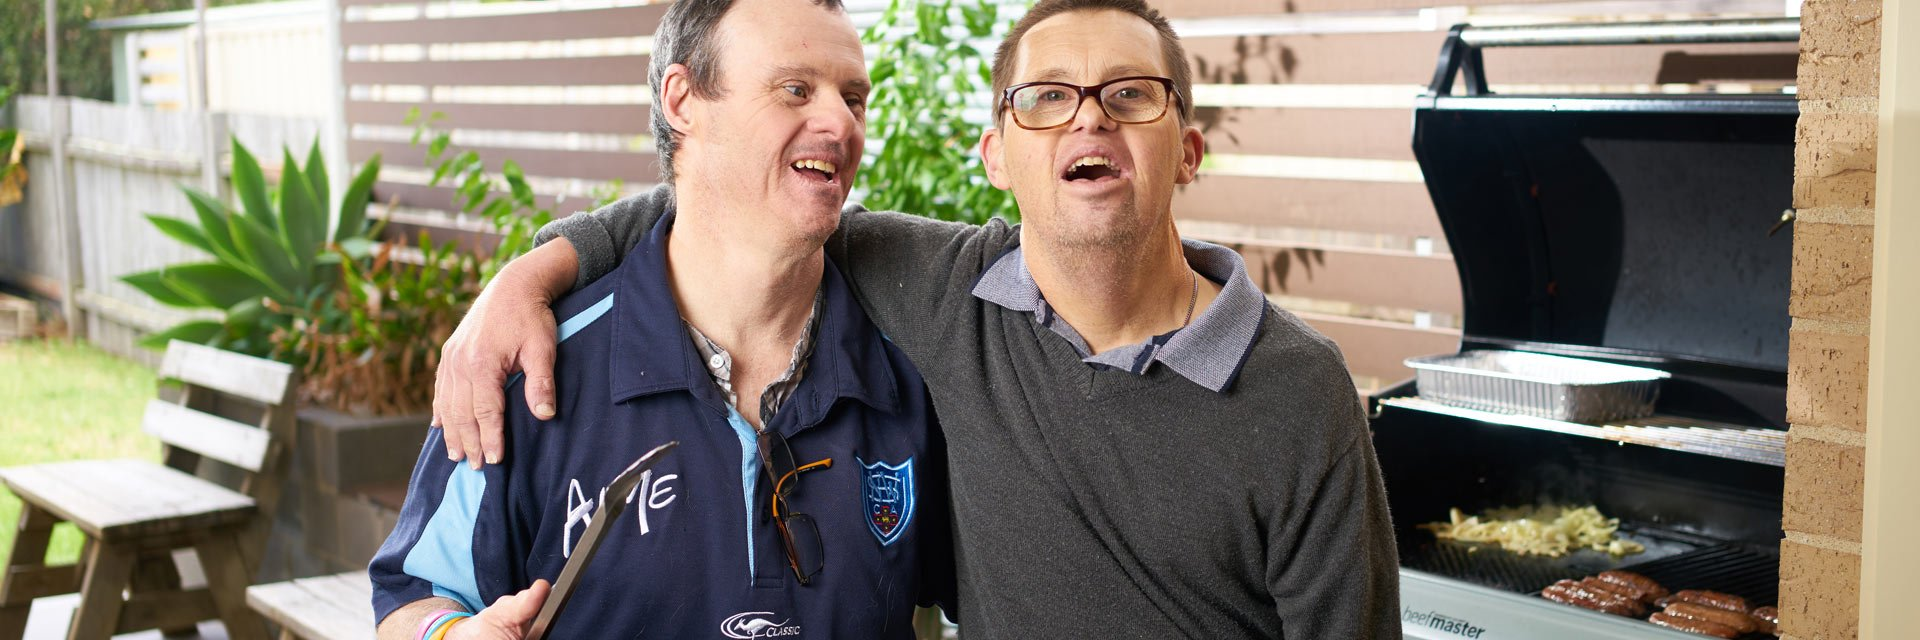 Two men in a Supported Independent Living service